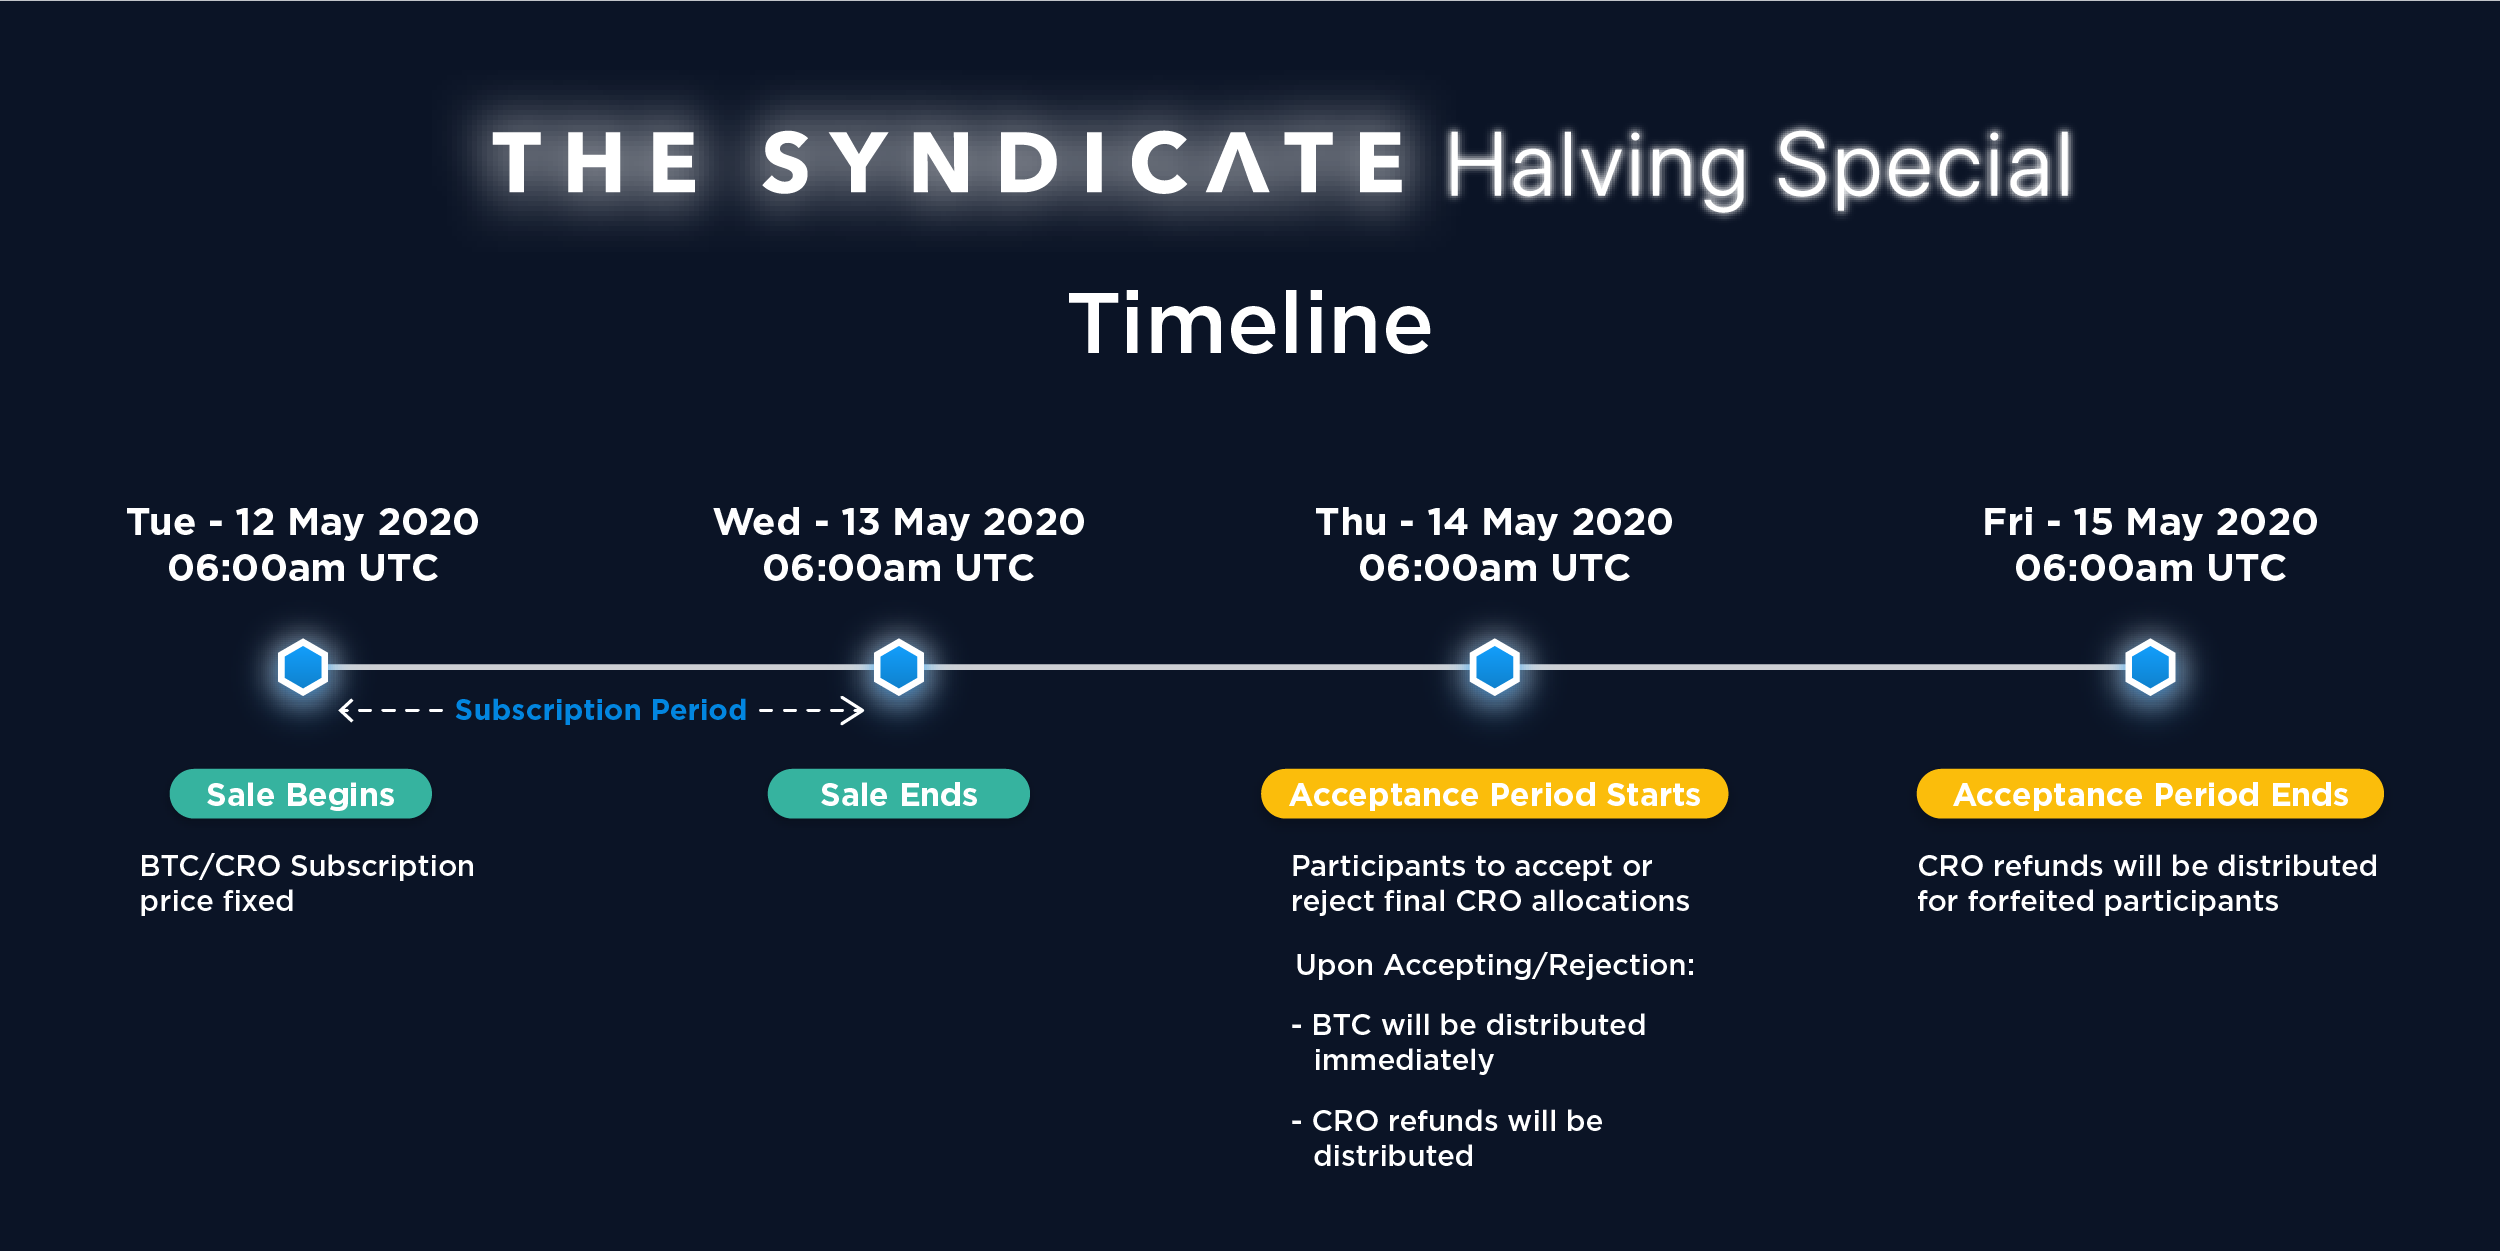 Halving promotions from Crypto.com! BTC with 50% discount and giveaway for 100,000 USD -  Blocksats 25